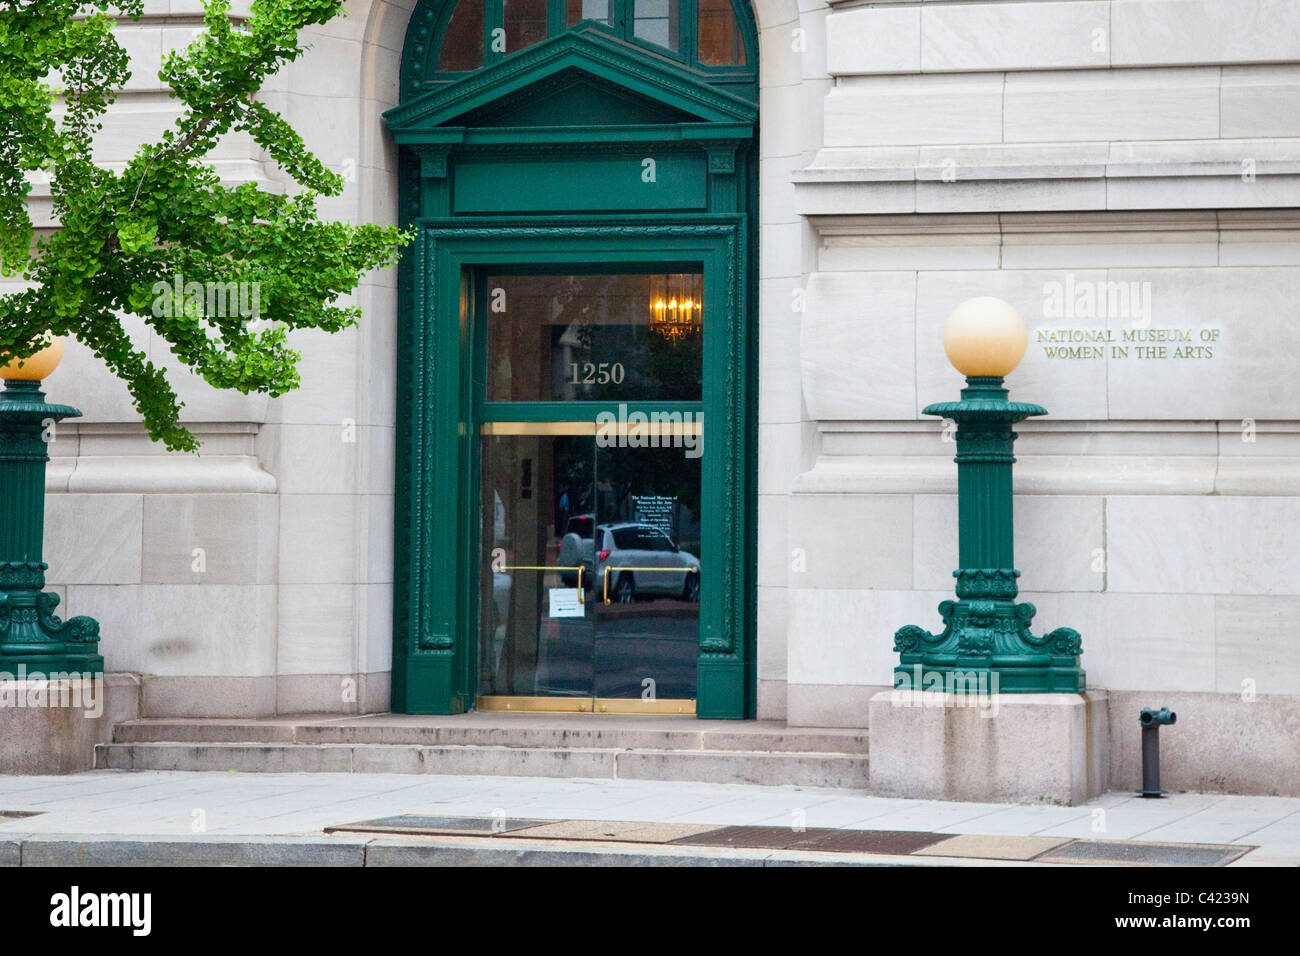 National Museum of Women in the Arts, Washington DC - Stock Image